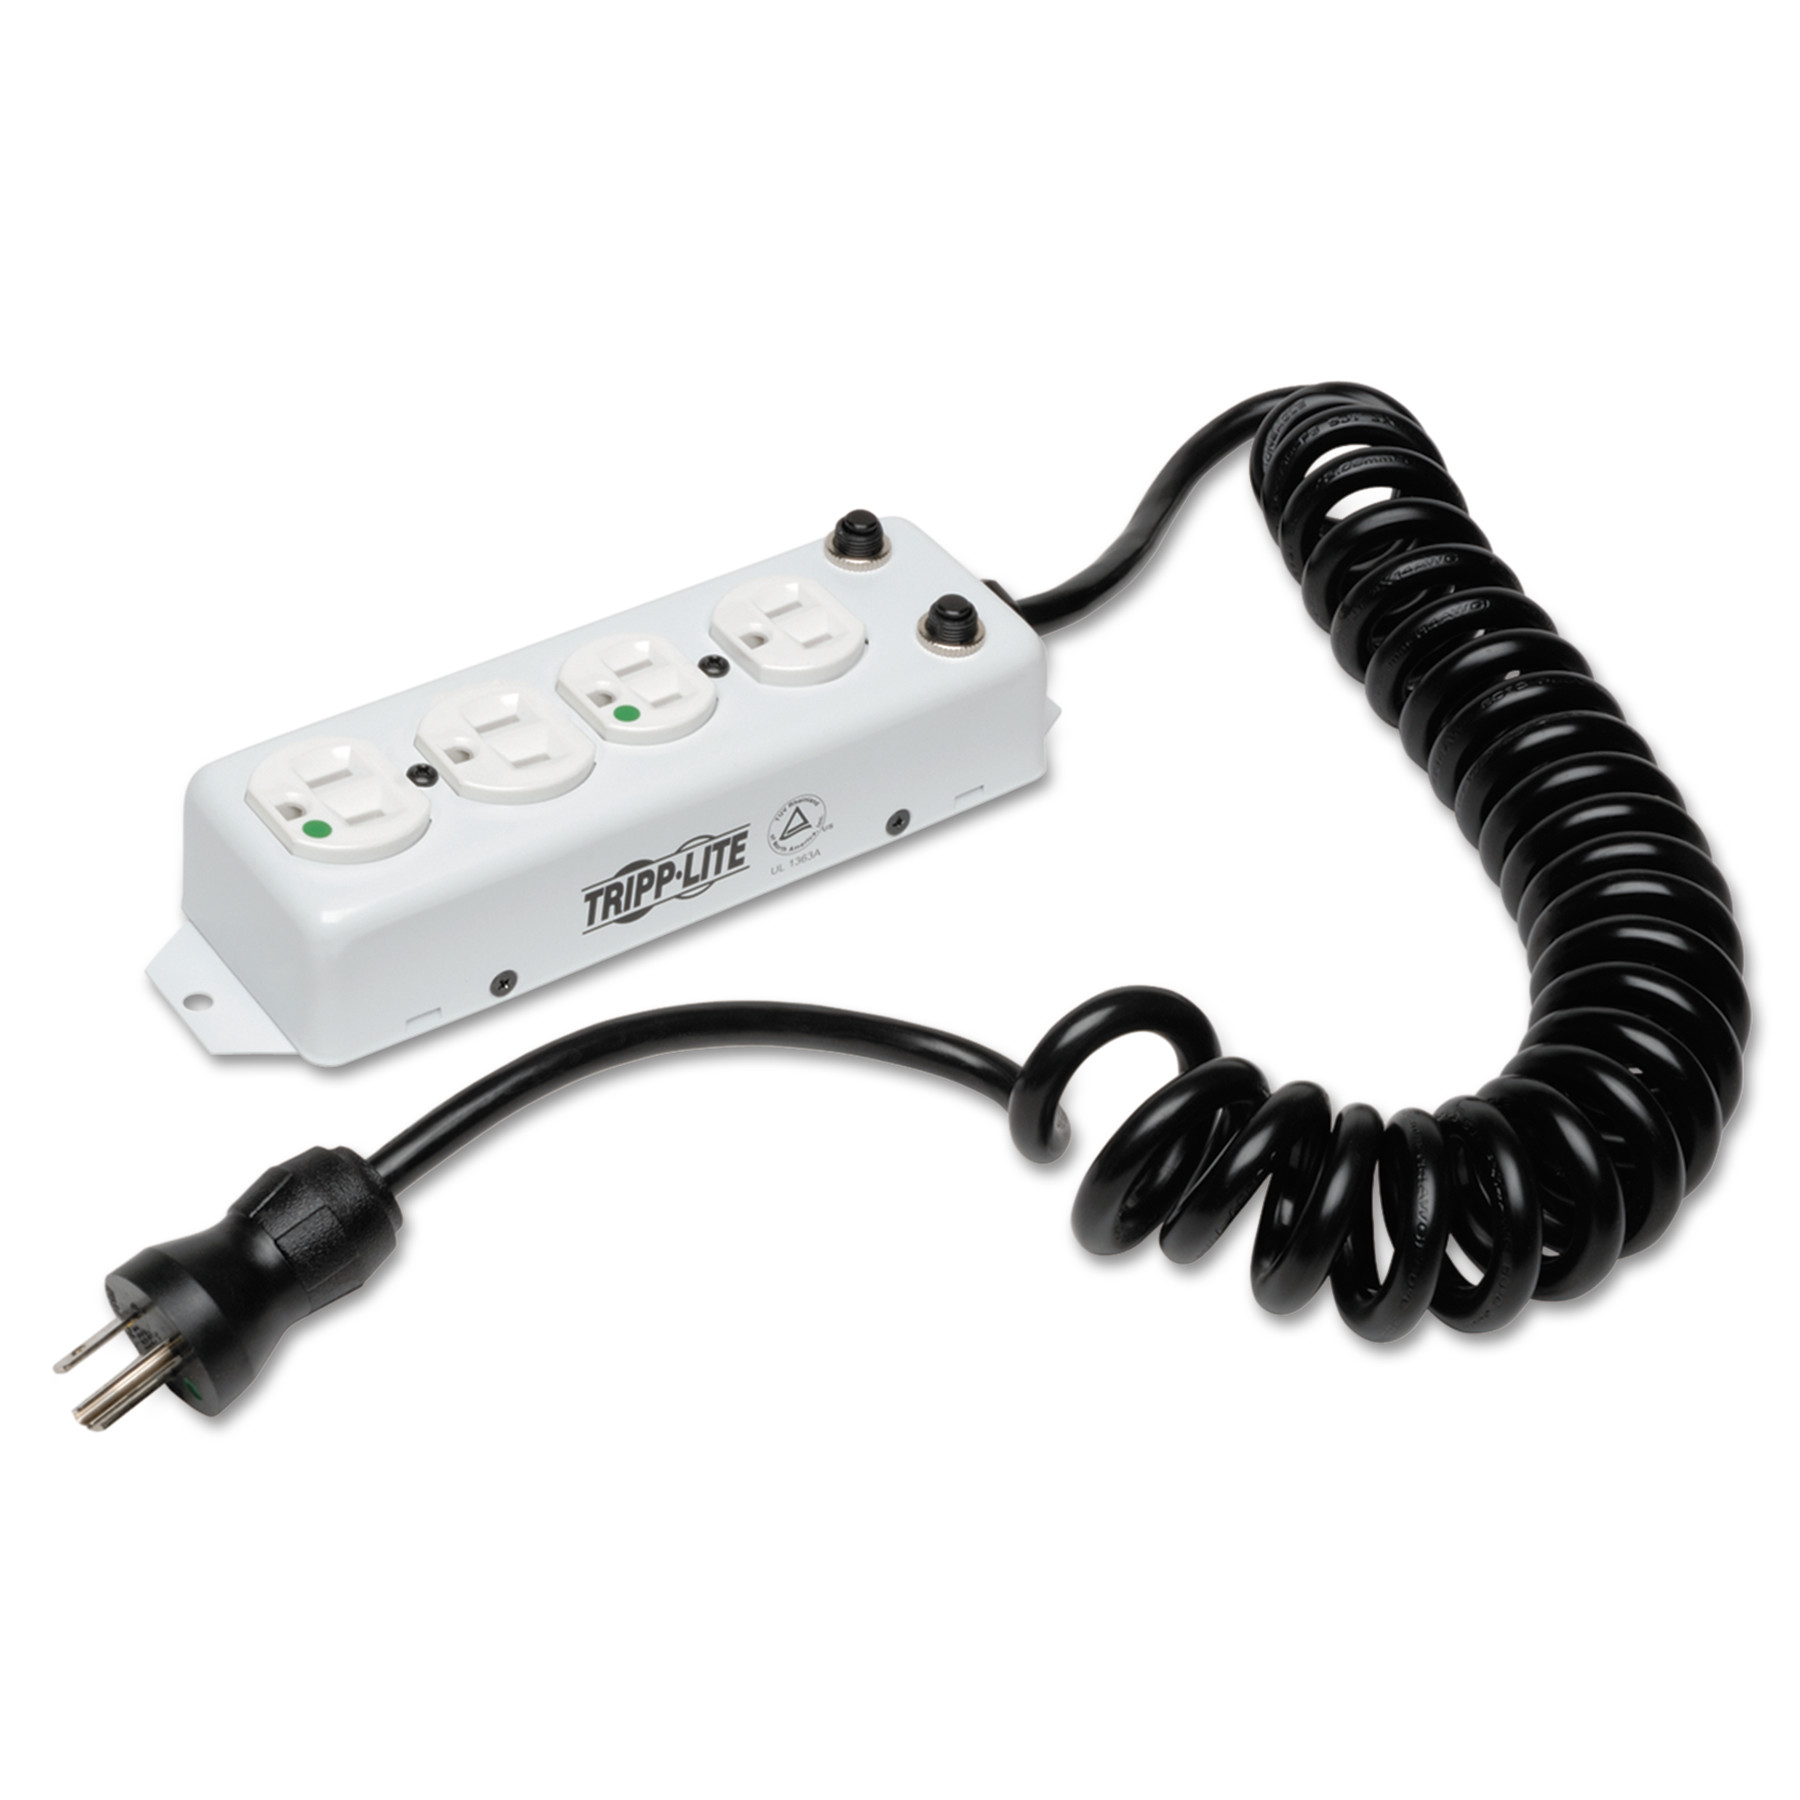 Tripp Lite Medical-Grade Power Strip for Patient Care Areas, 4 Outlets, 10 ft Cord, White